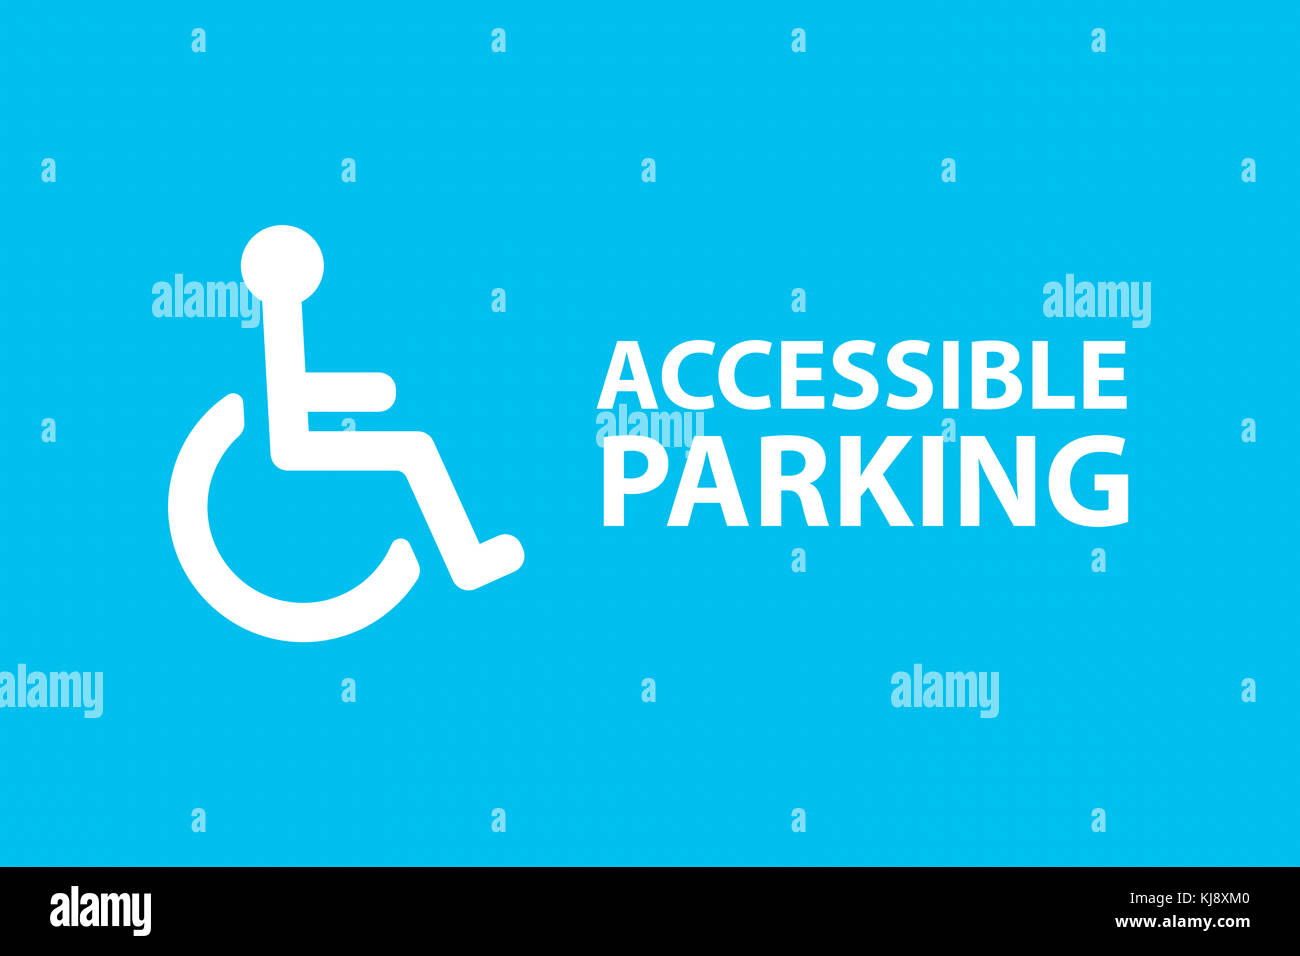 Illustrative handicap parking area with disabled wheel chair person symbol and accessible parking sentence on blue - Stock Image